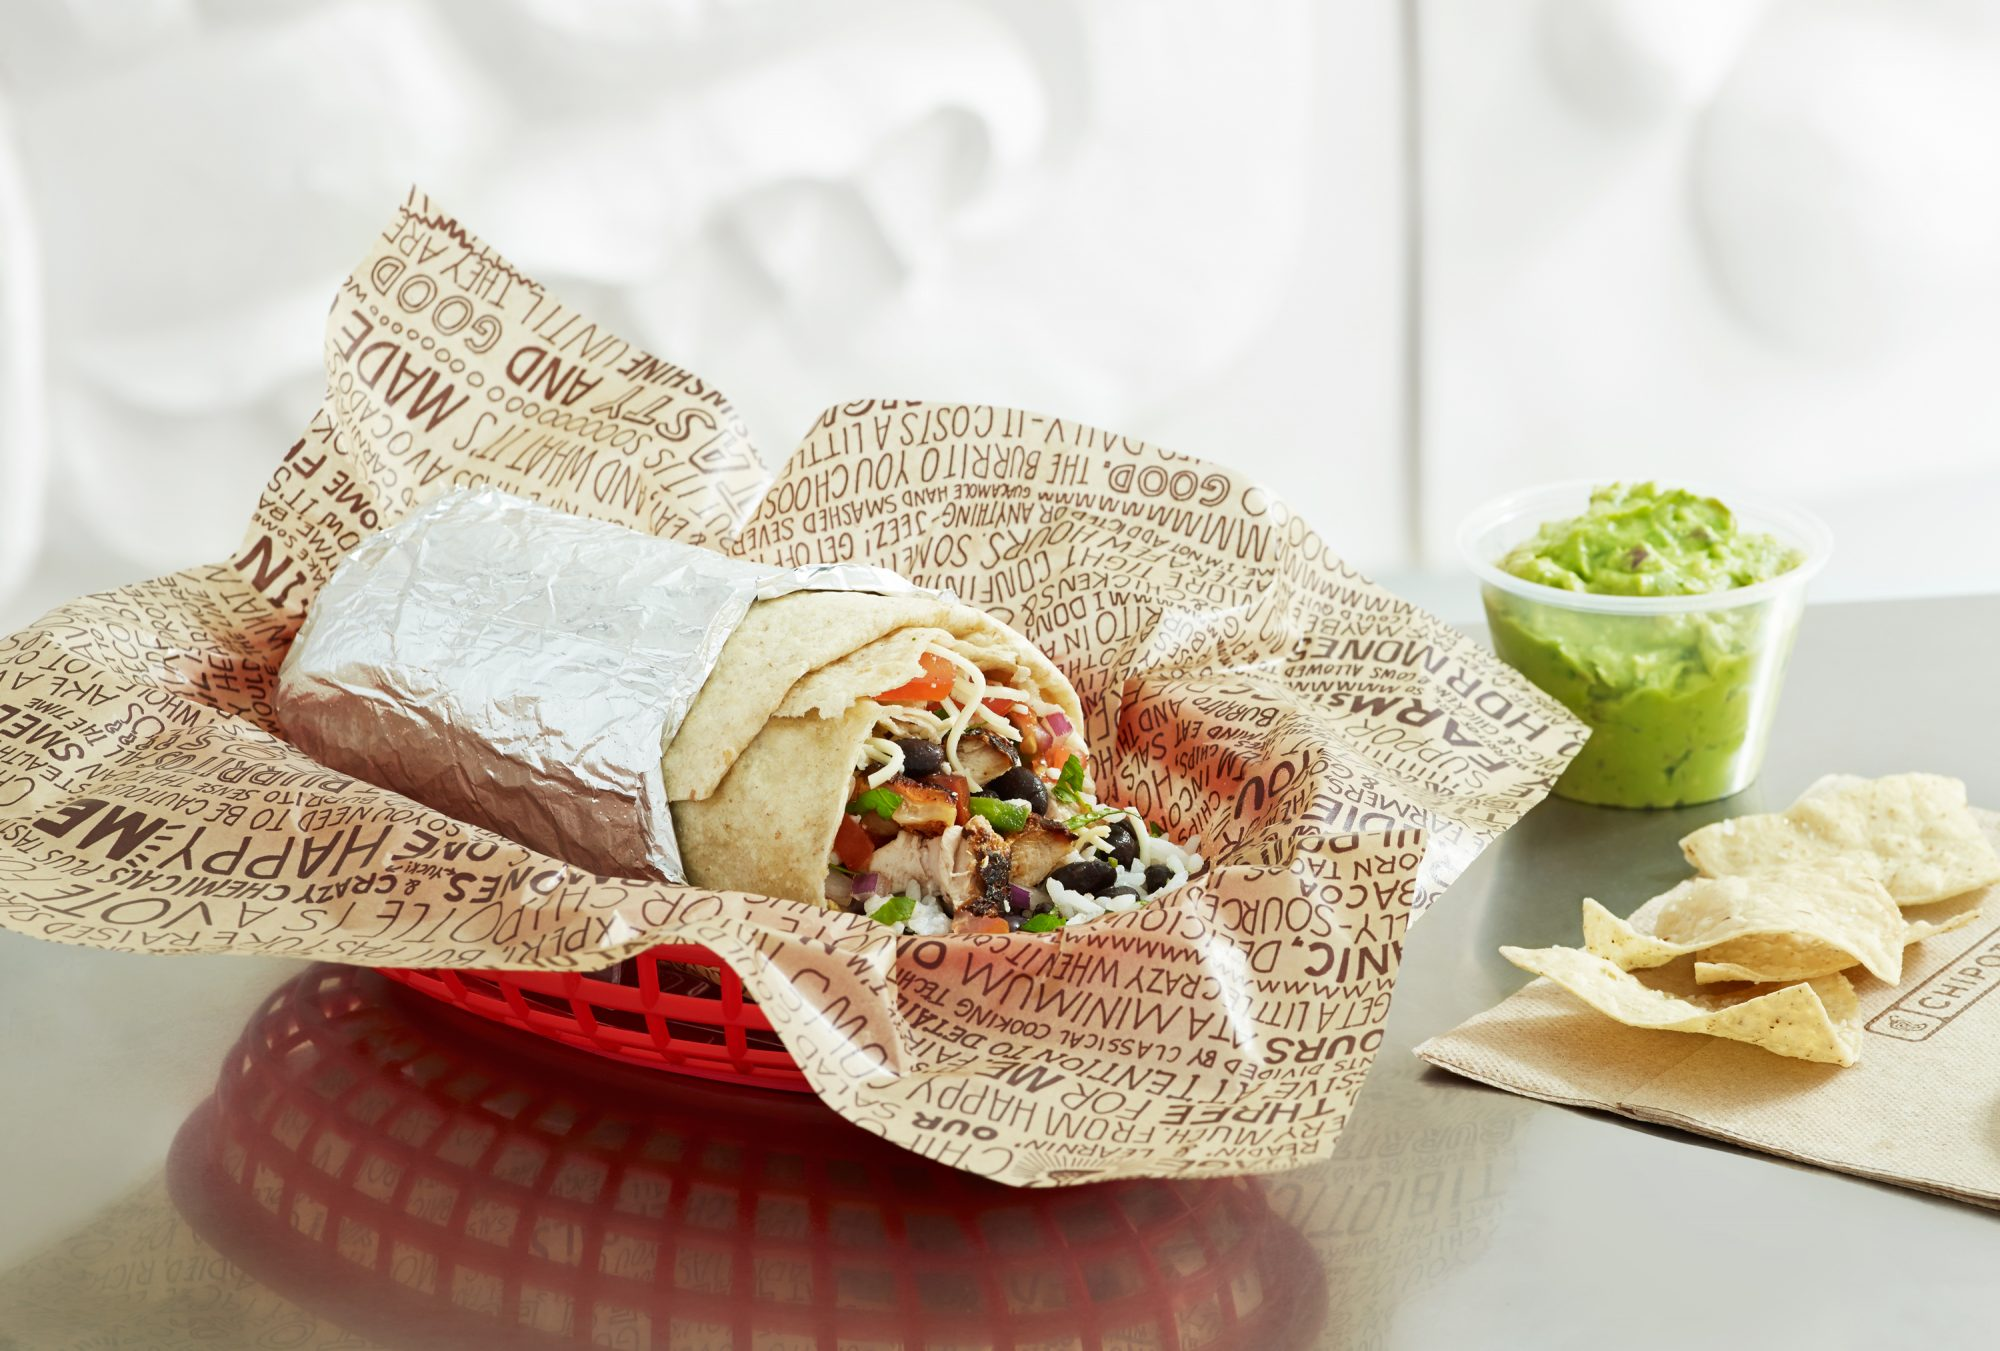 Chipotle Ranked Which States Ate the Most Burritos in Honor of National Burrito Day